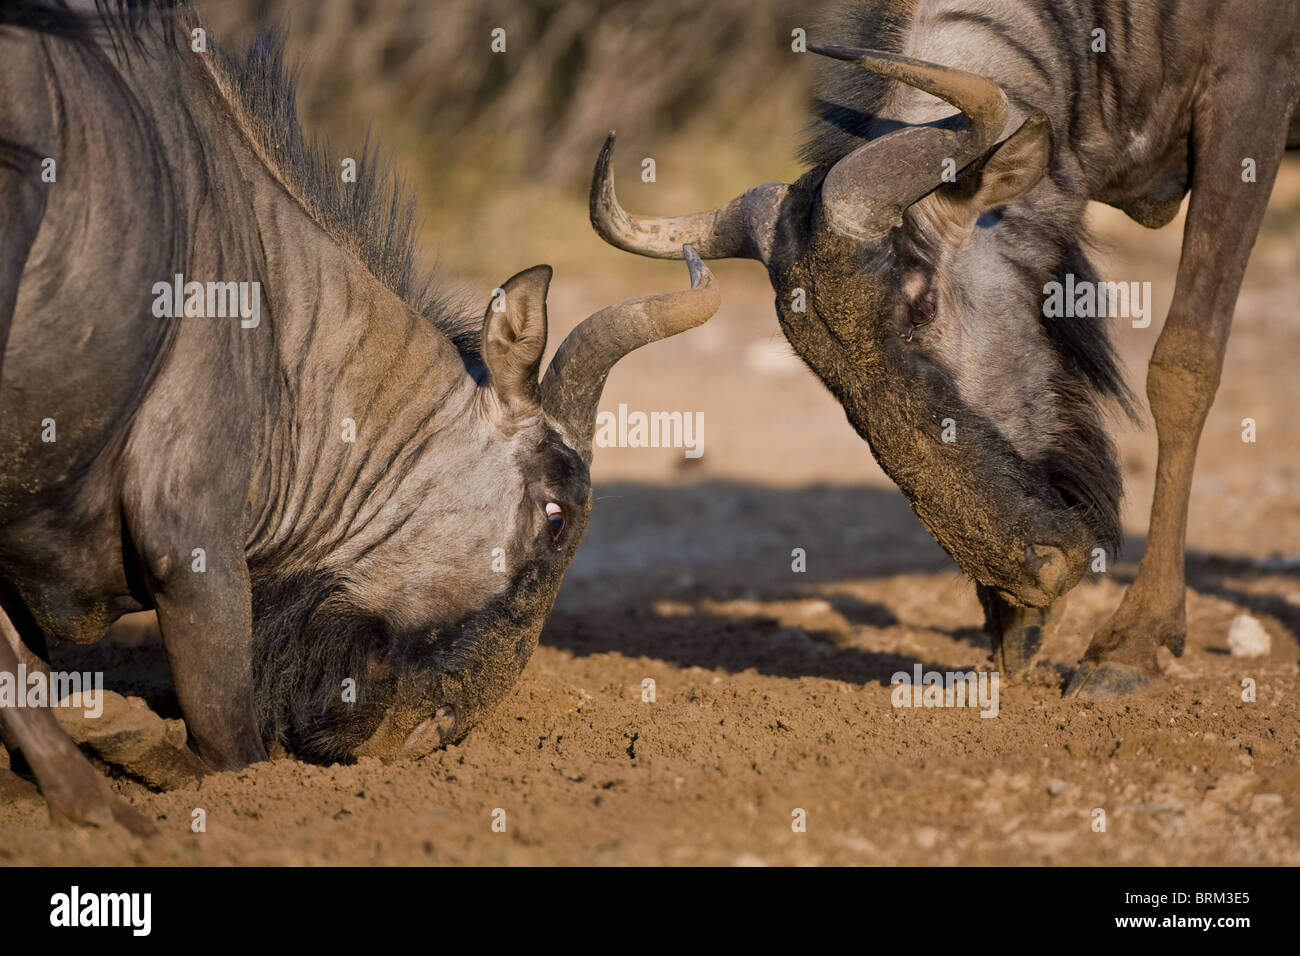 Blue wildebeest squaring up for combat to establish territorial dominance - Stock Image